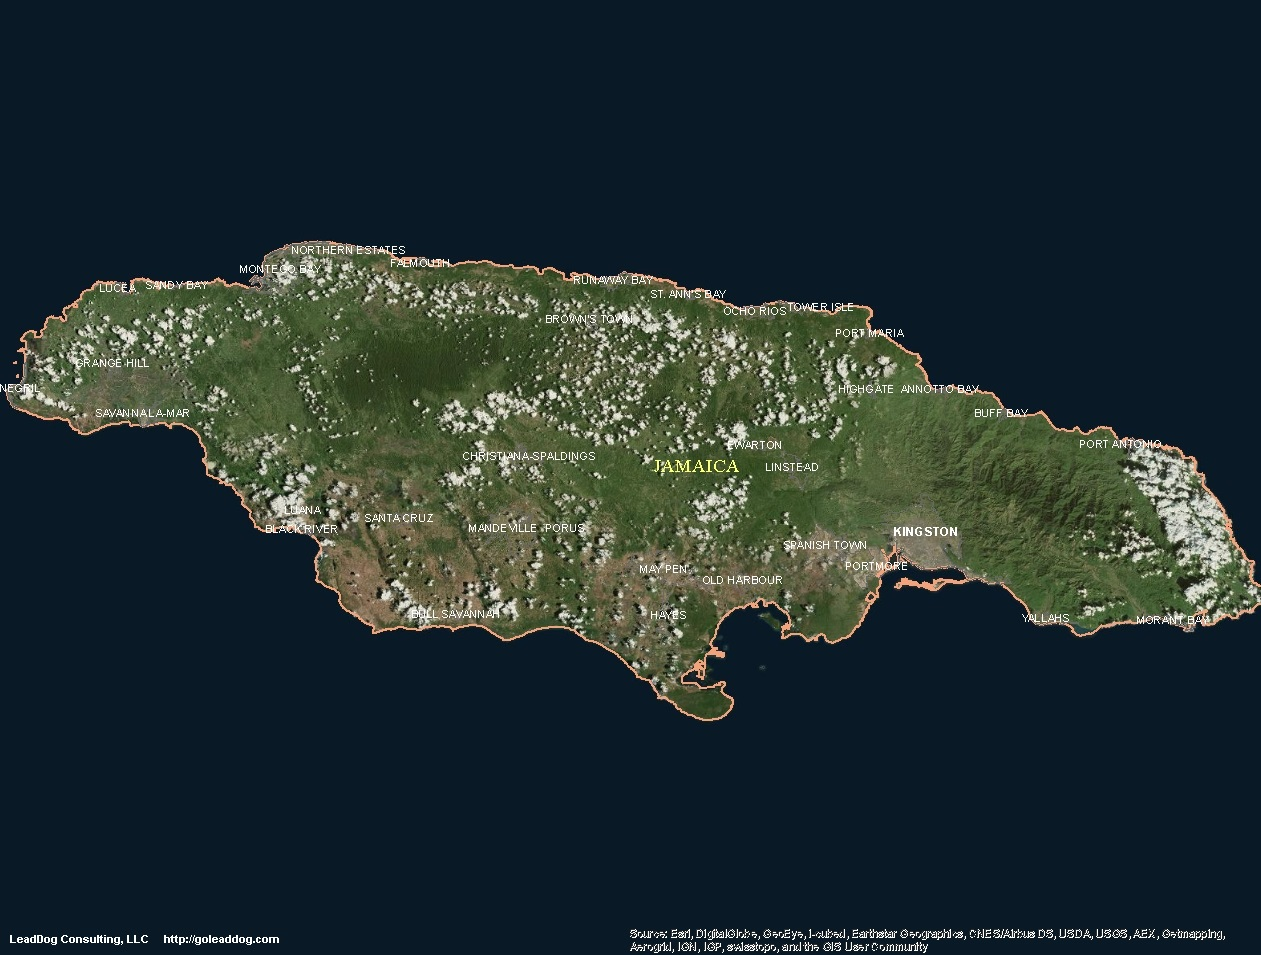 Zoomedin View Of A Jamaica Outline With Perspective Lines Against - Recent google maps satellite images